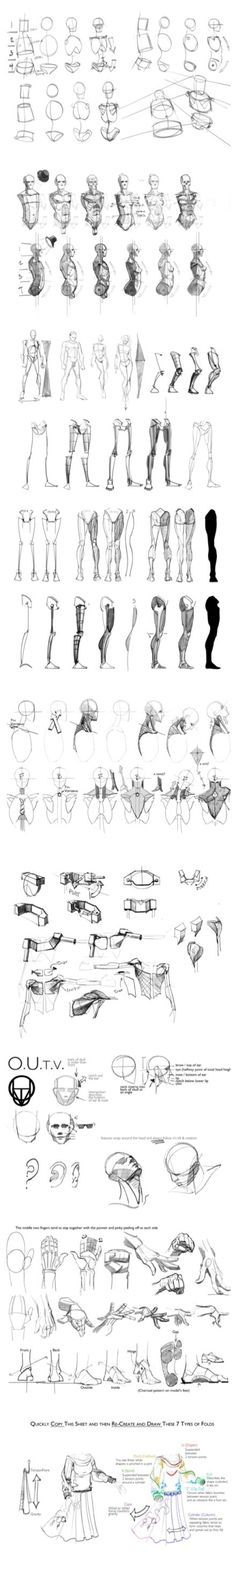 Anatomy Drawing Tutorial Guide Reference How To Draw Anime Master Anime Ecchi Picture Wallpapers… Human Drawing, Body Drawing, Drawing Practice, Drawing Poses, Anatomy Practice, Drawing Hair, Gesture Drawing, Drawing Skills, Anatomy Sketches